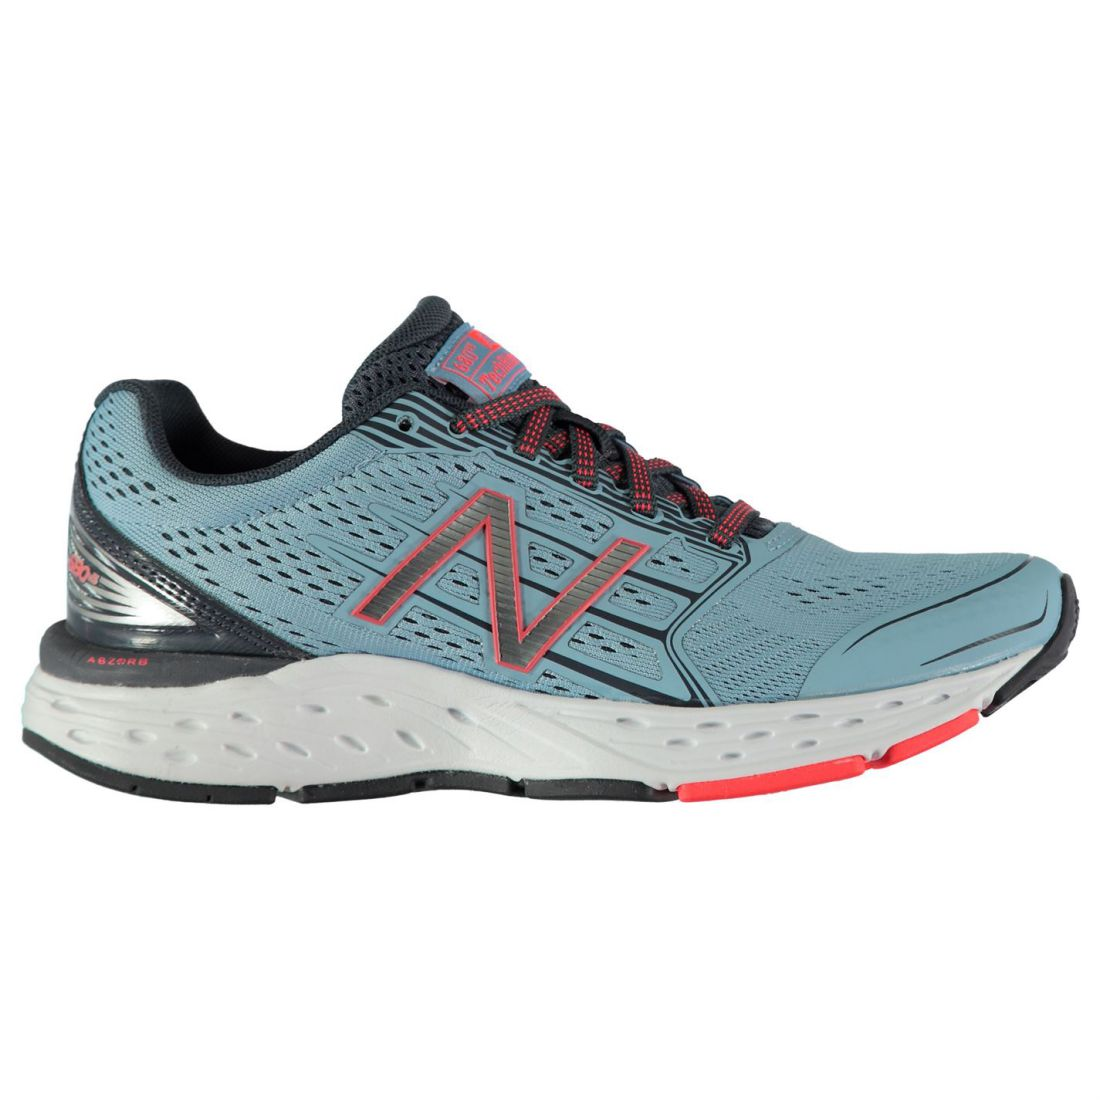 6db42dd35fee New Balance 680 v5 Running Shoes Ladies Road Laces Fastened ...